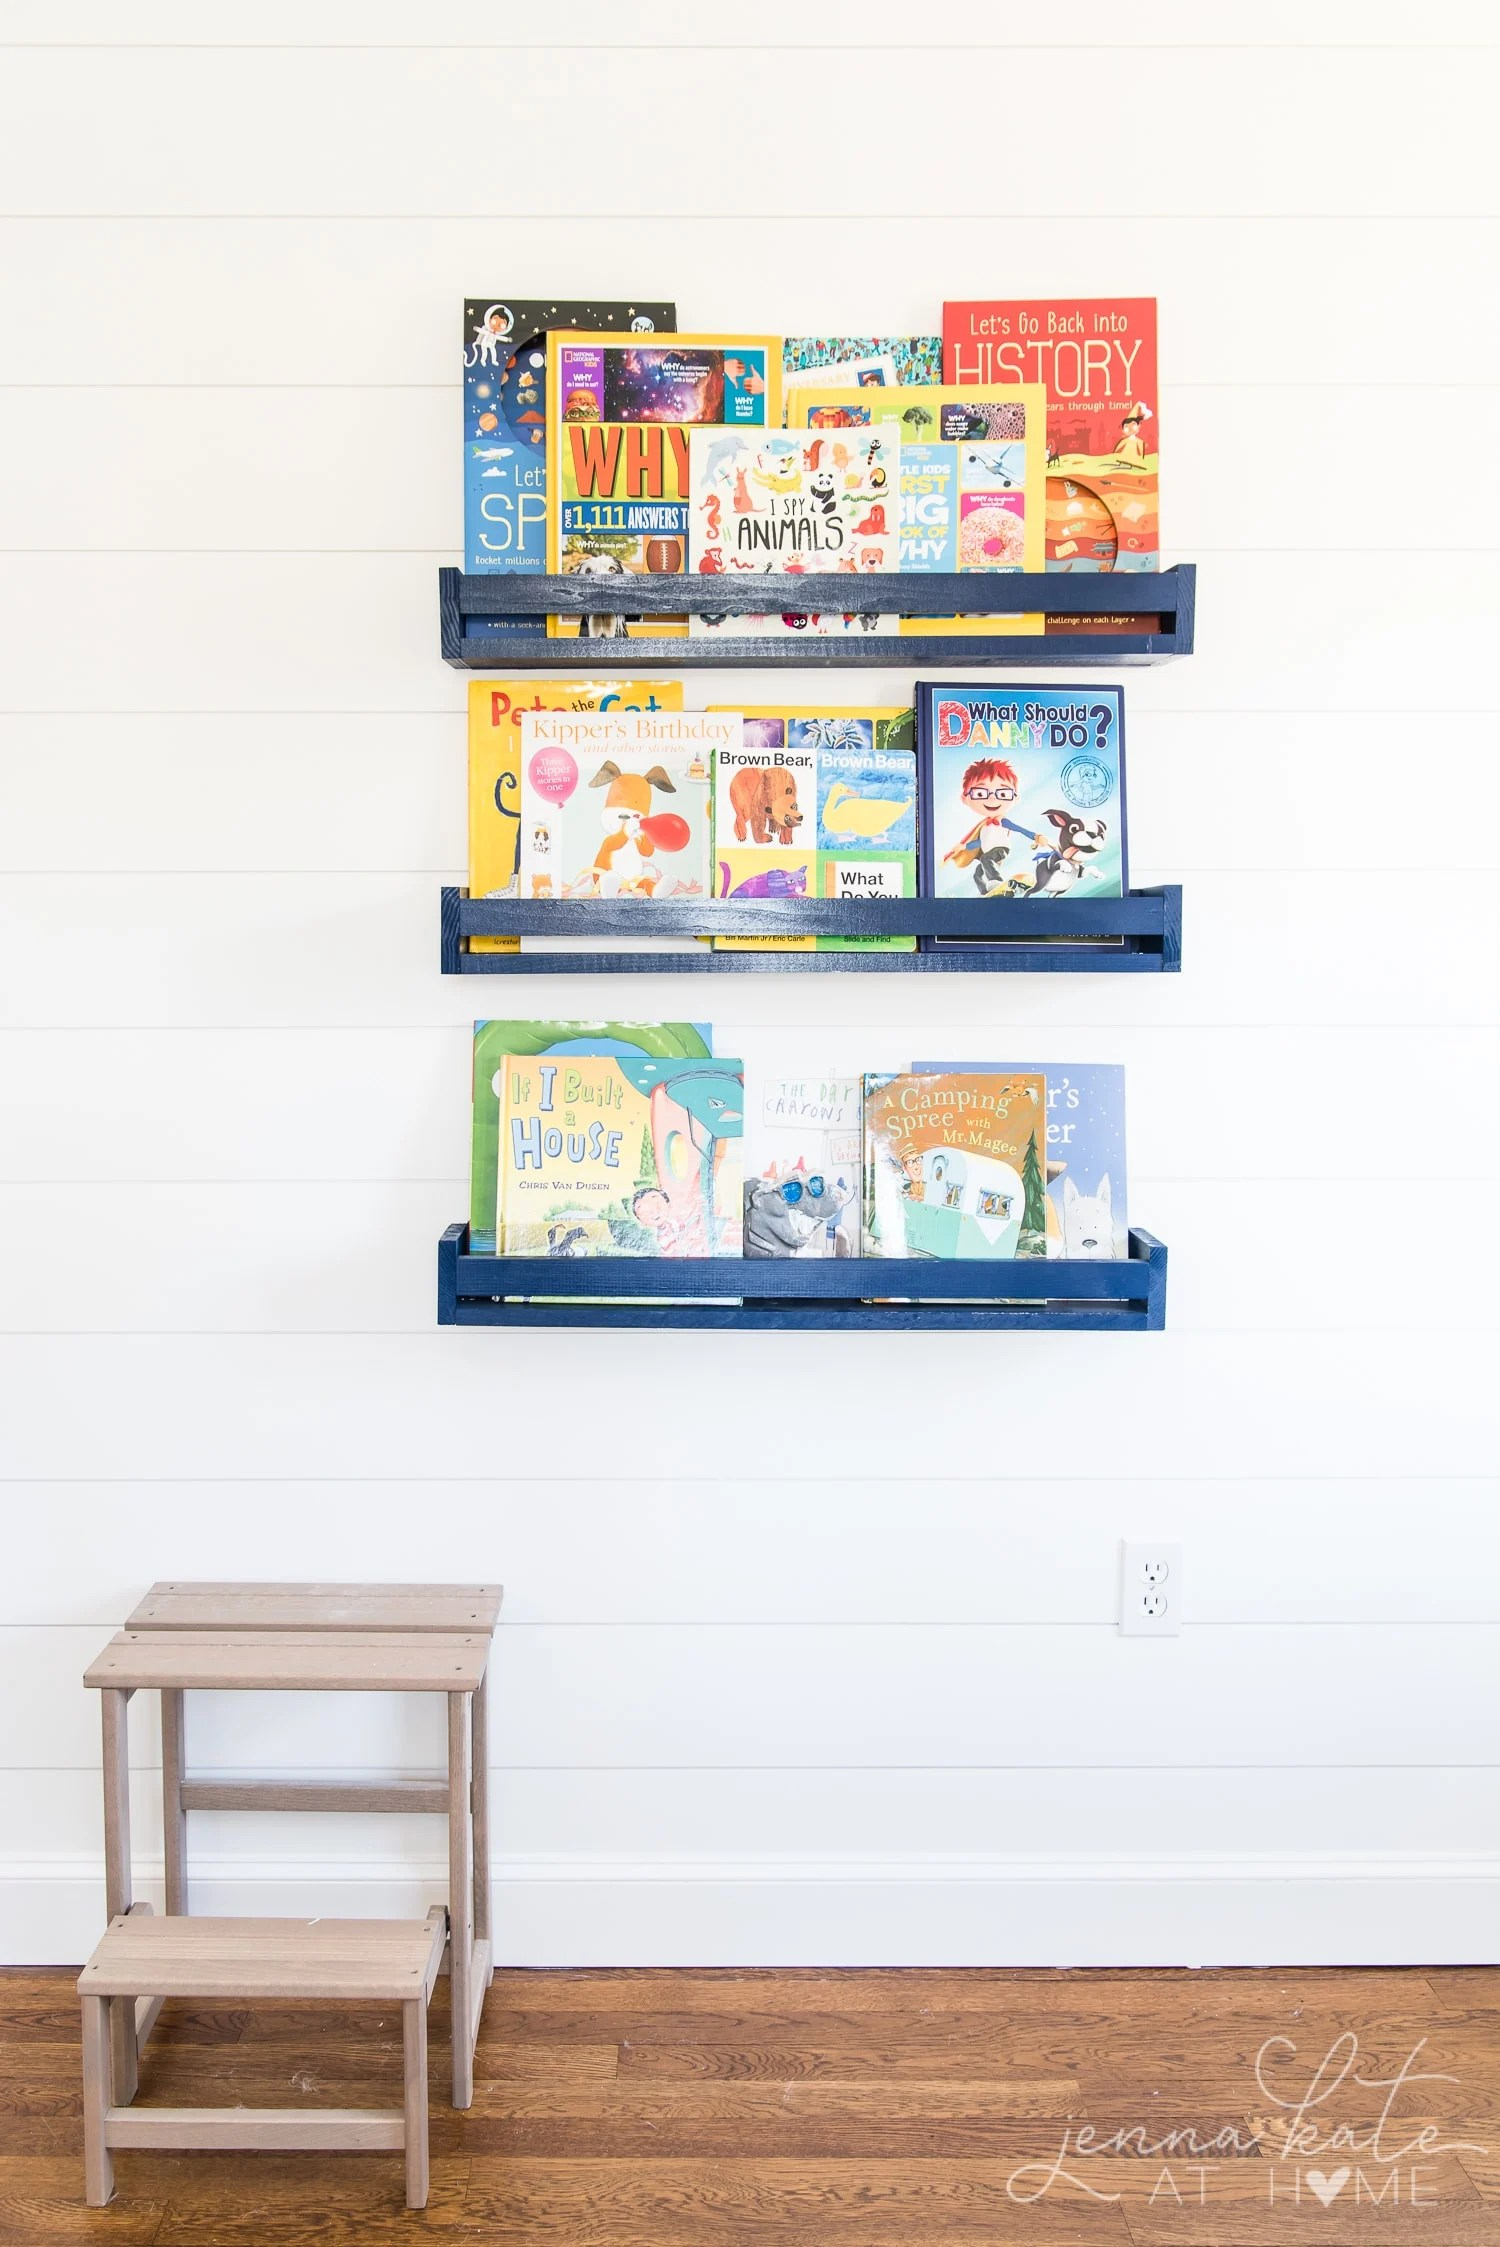 Book ledges on the wall of a kids bedroom instead of a bookshelf that takes up space in a small room